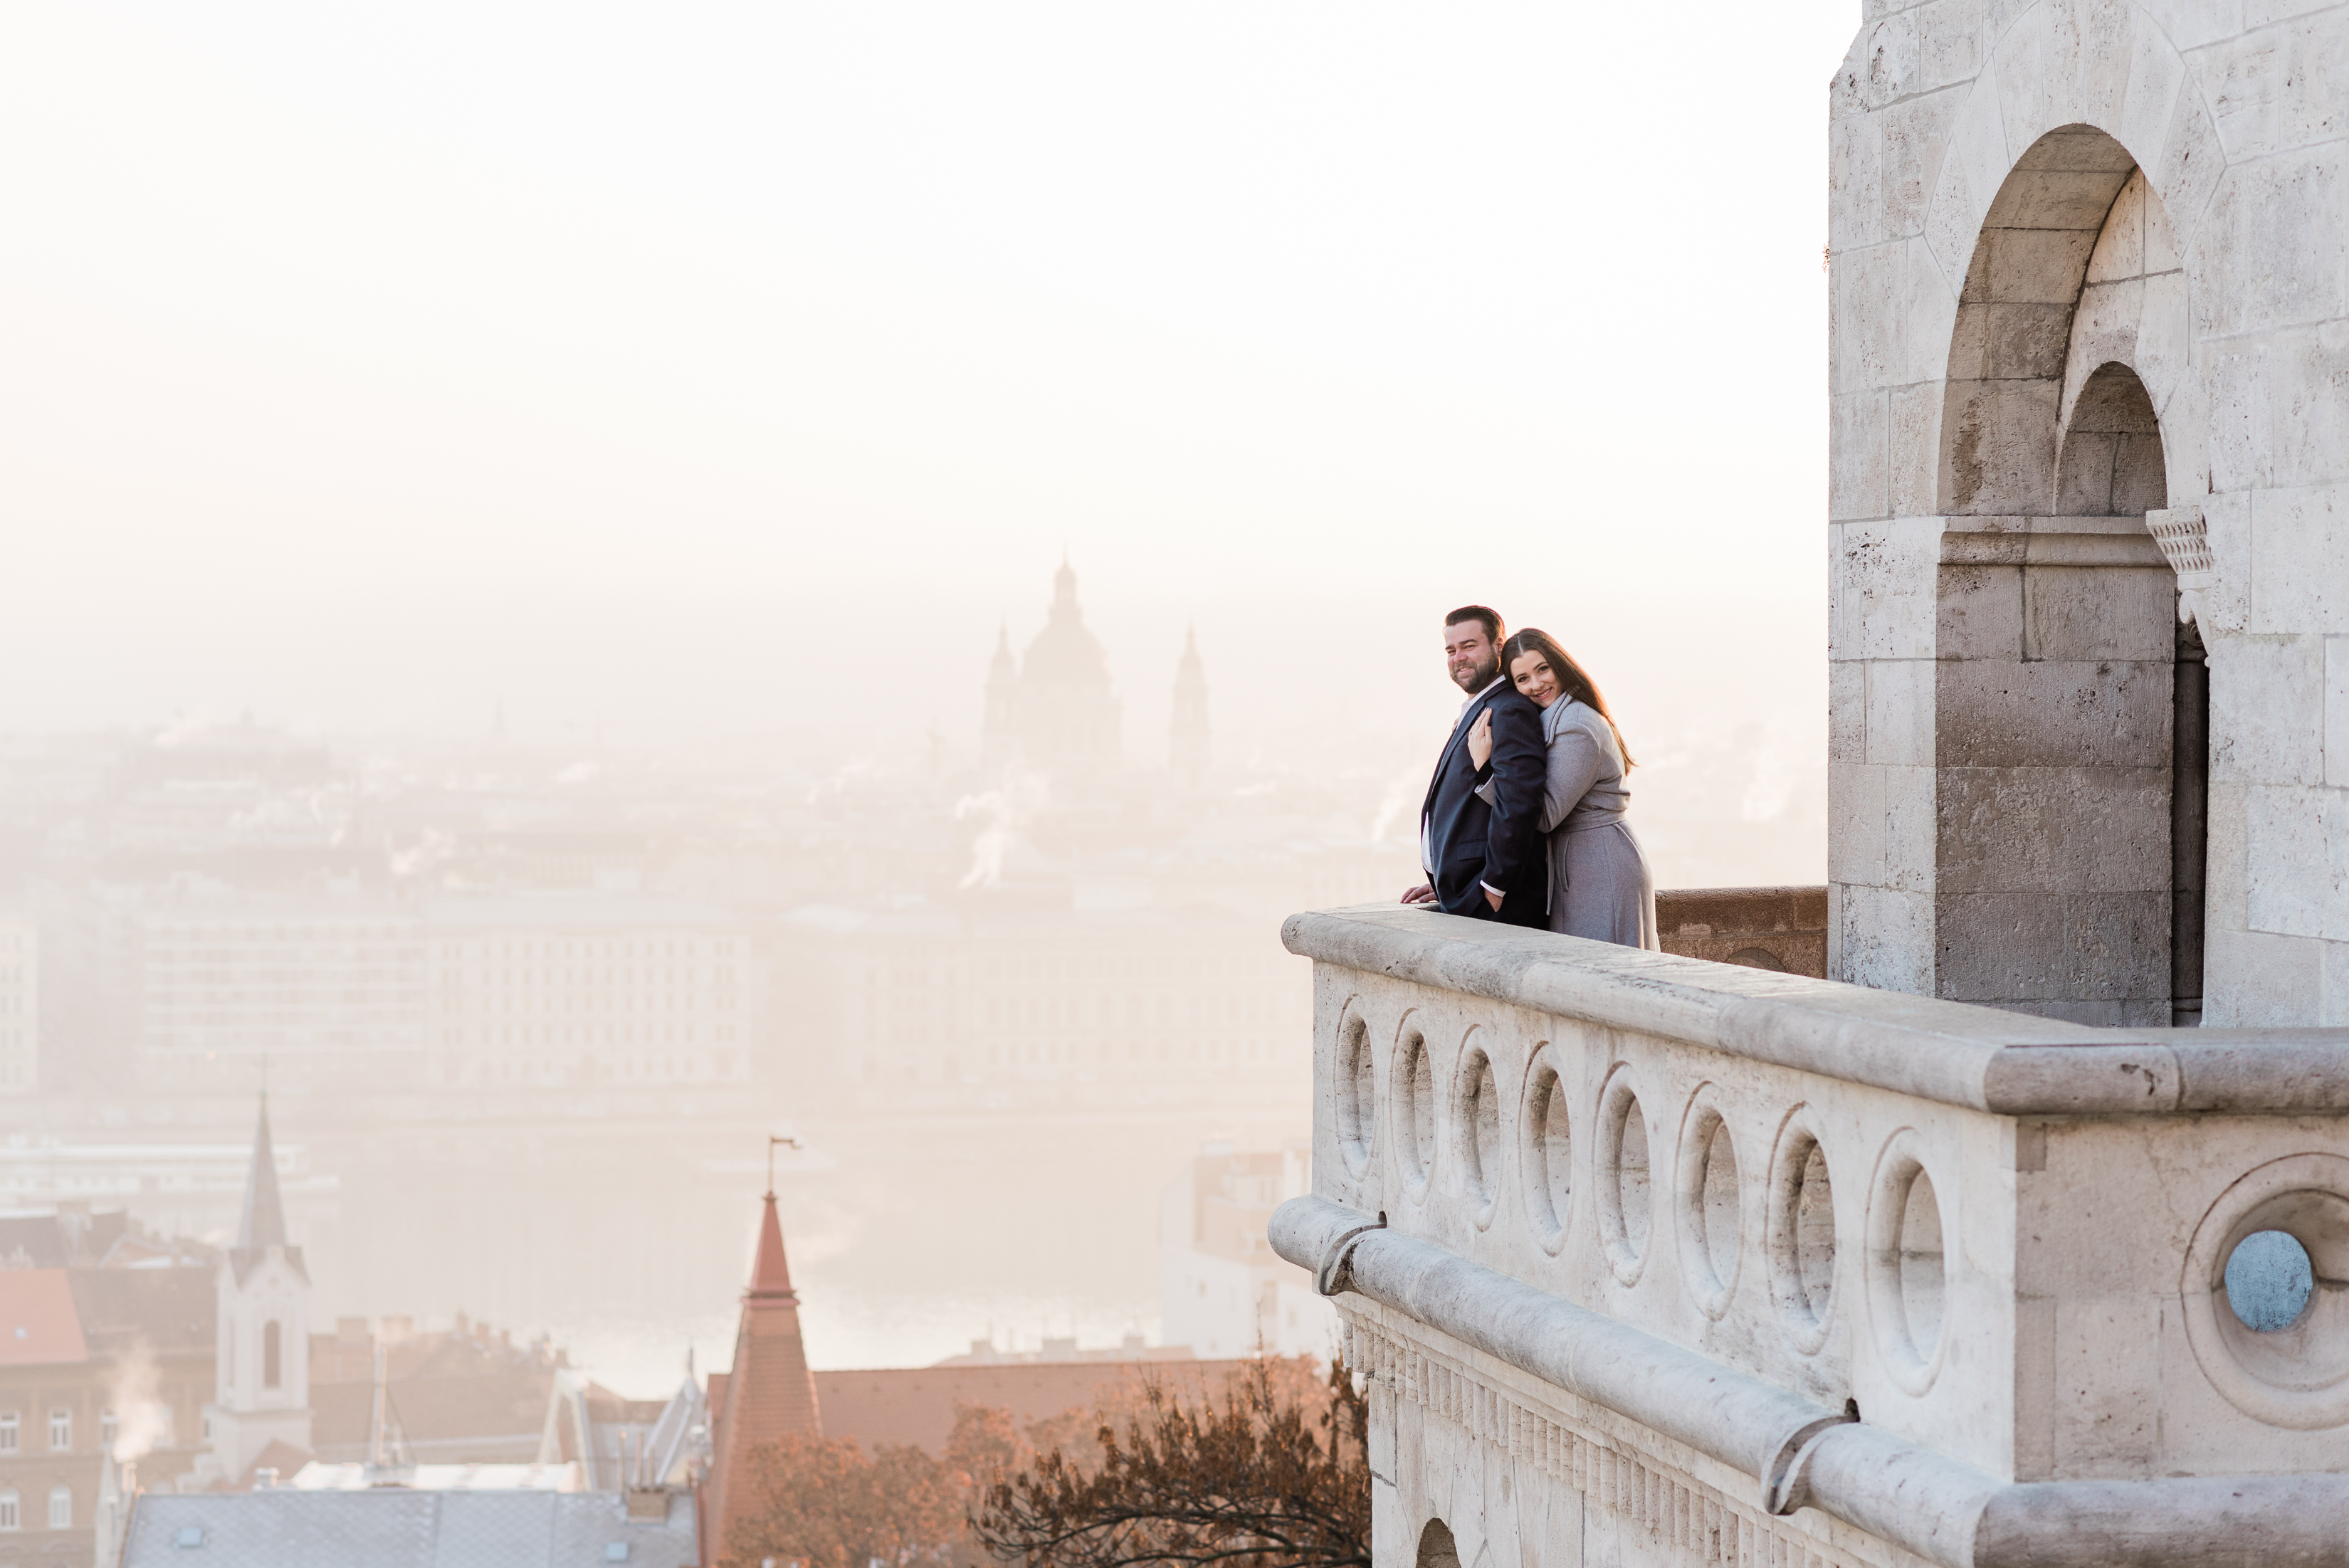 16+ Reasons Why Winter Is the Best Time for Your Euro Trip